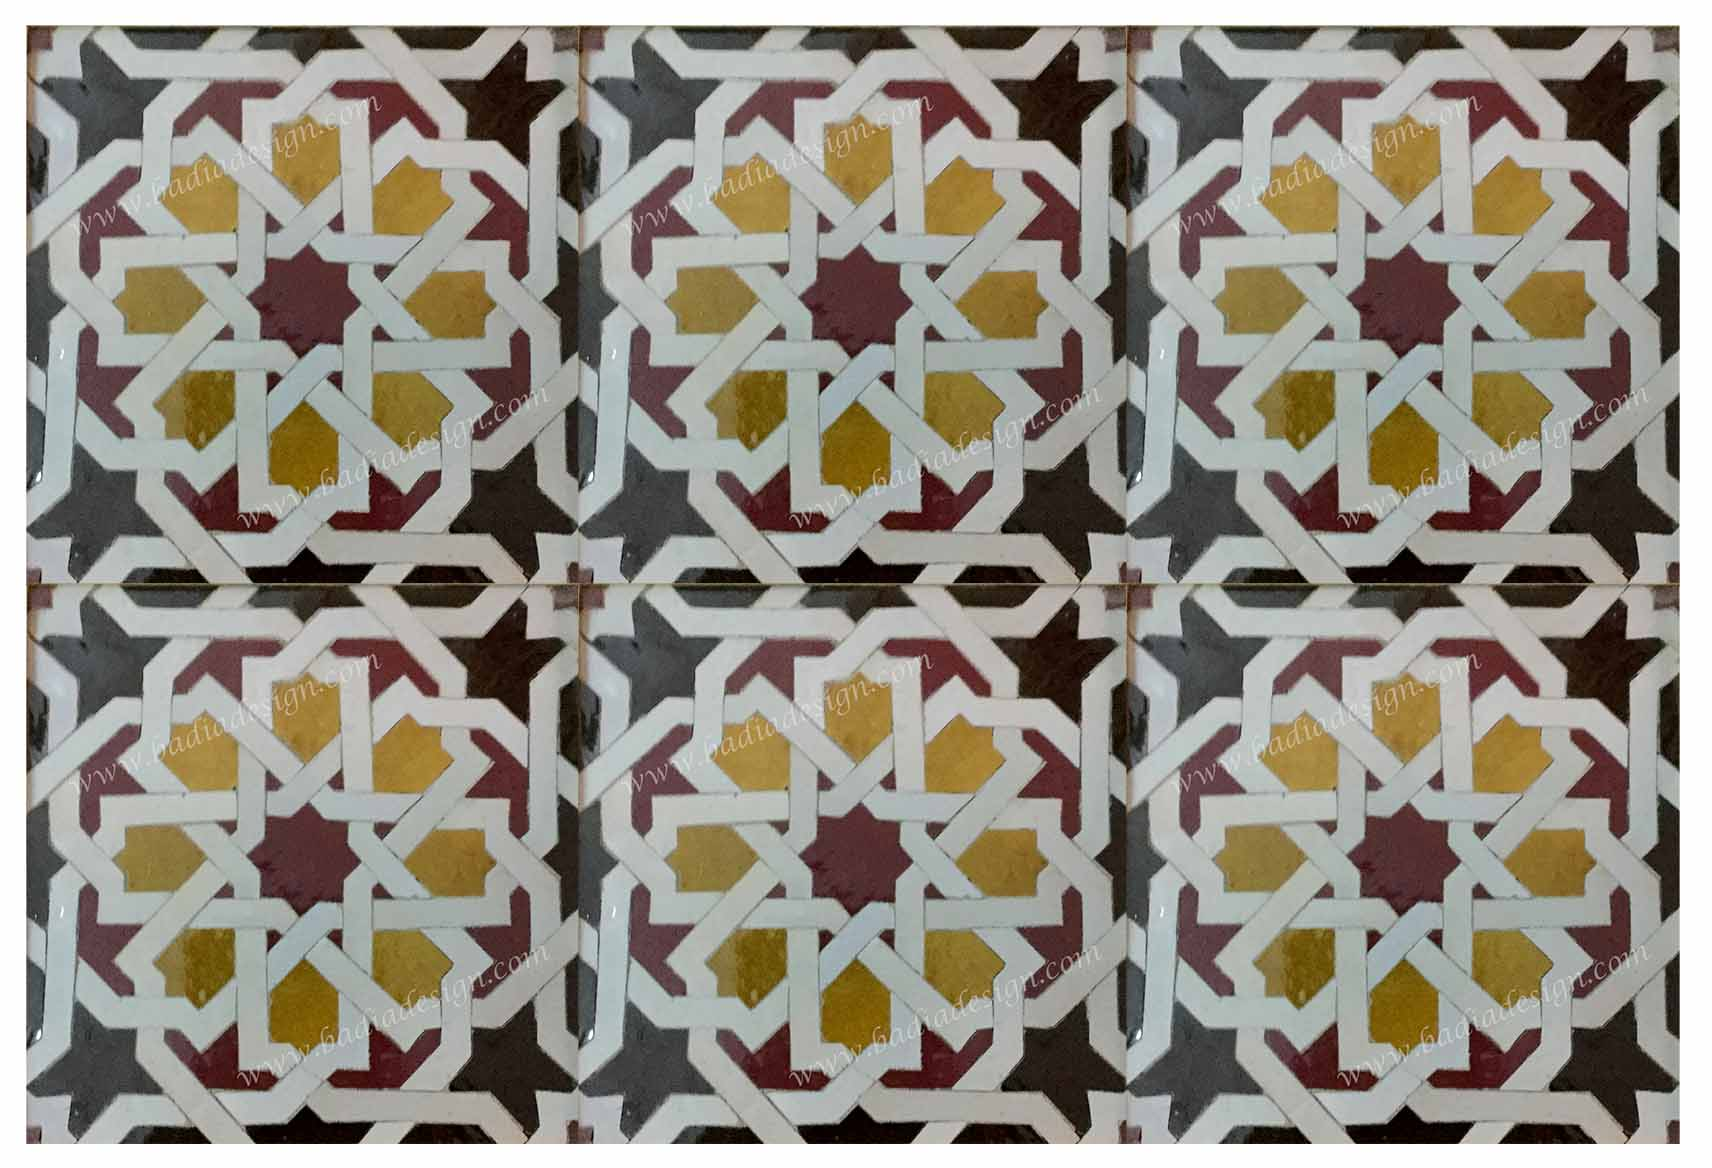 Moroccan mosaic floor tile from badia design inc moroccan mosaic floor tile dailygadgetfo Image collections